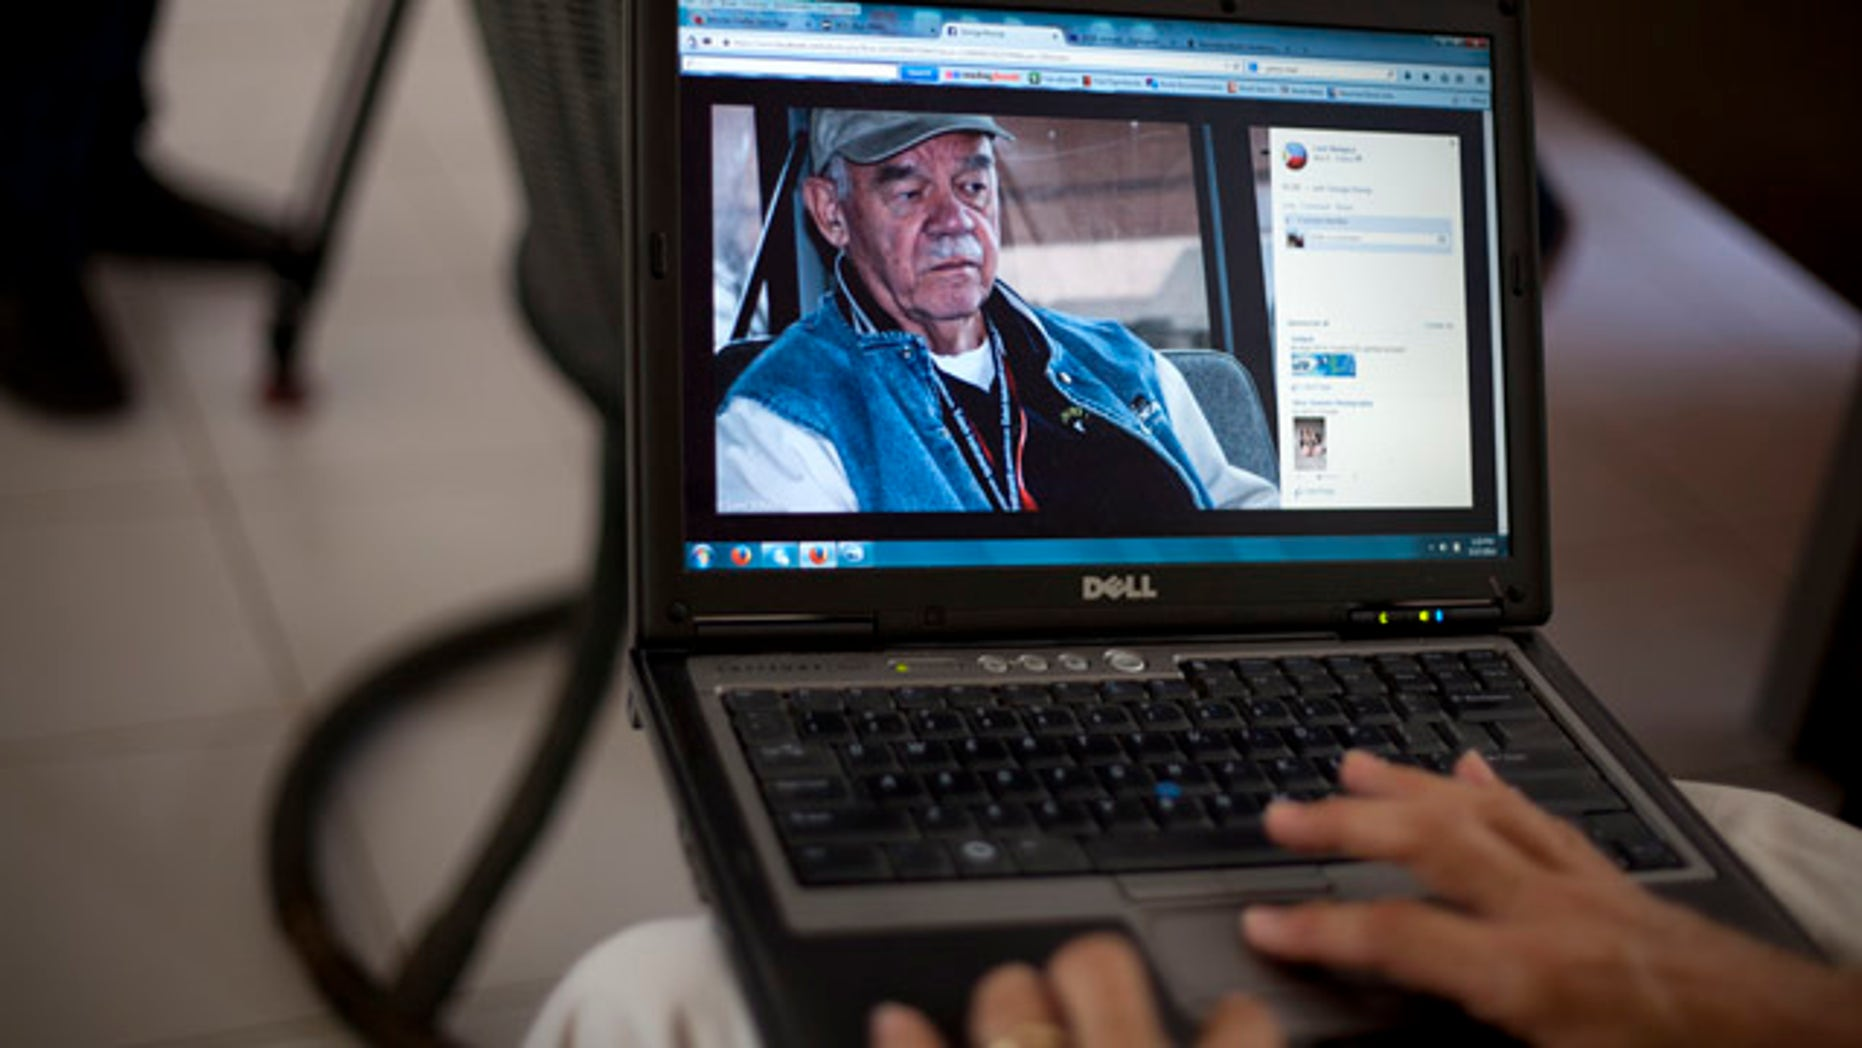 May 17, 2014: A picture of George Knoop, 77,  an American missionary who was killed at his home this week, is displayed in a laptop by a member of the mission in Port-au-Prince, Haiti. (AP Photo/Dieu Nalio Chery)